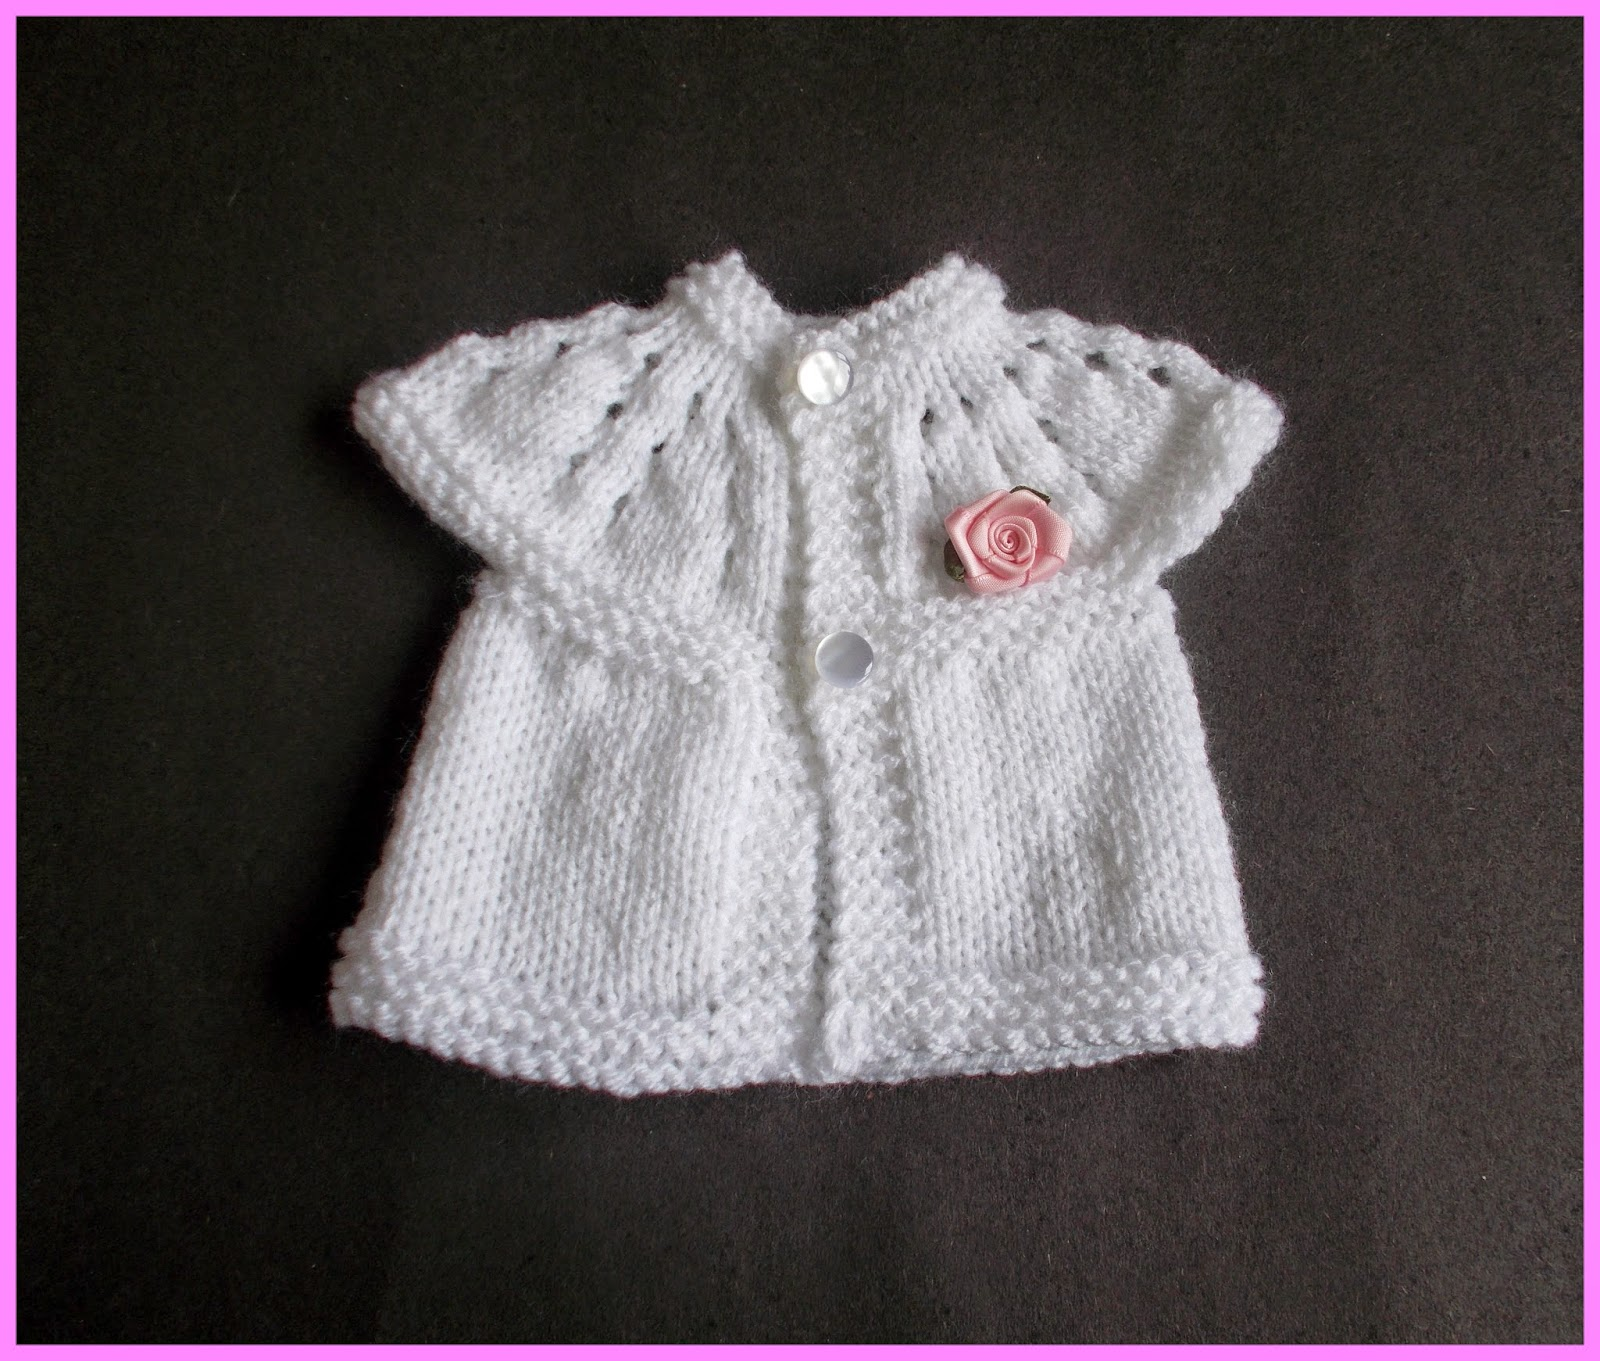 Knitting Top Down Patterns : Top down baby sweater knitting patterns easier to adjust